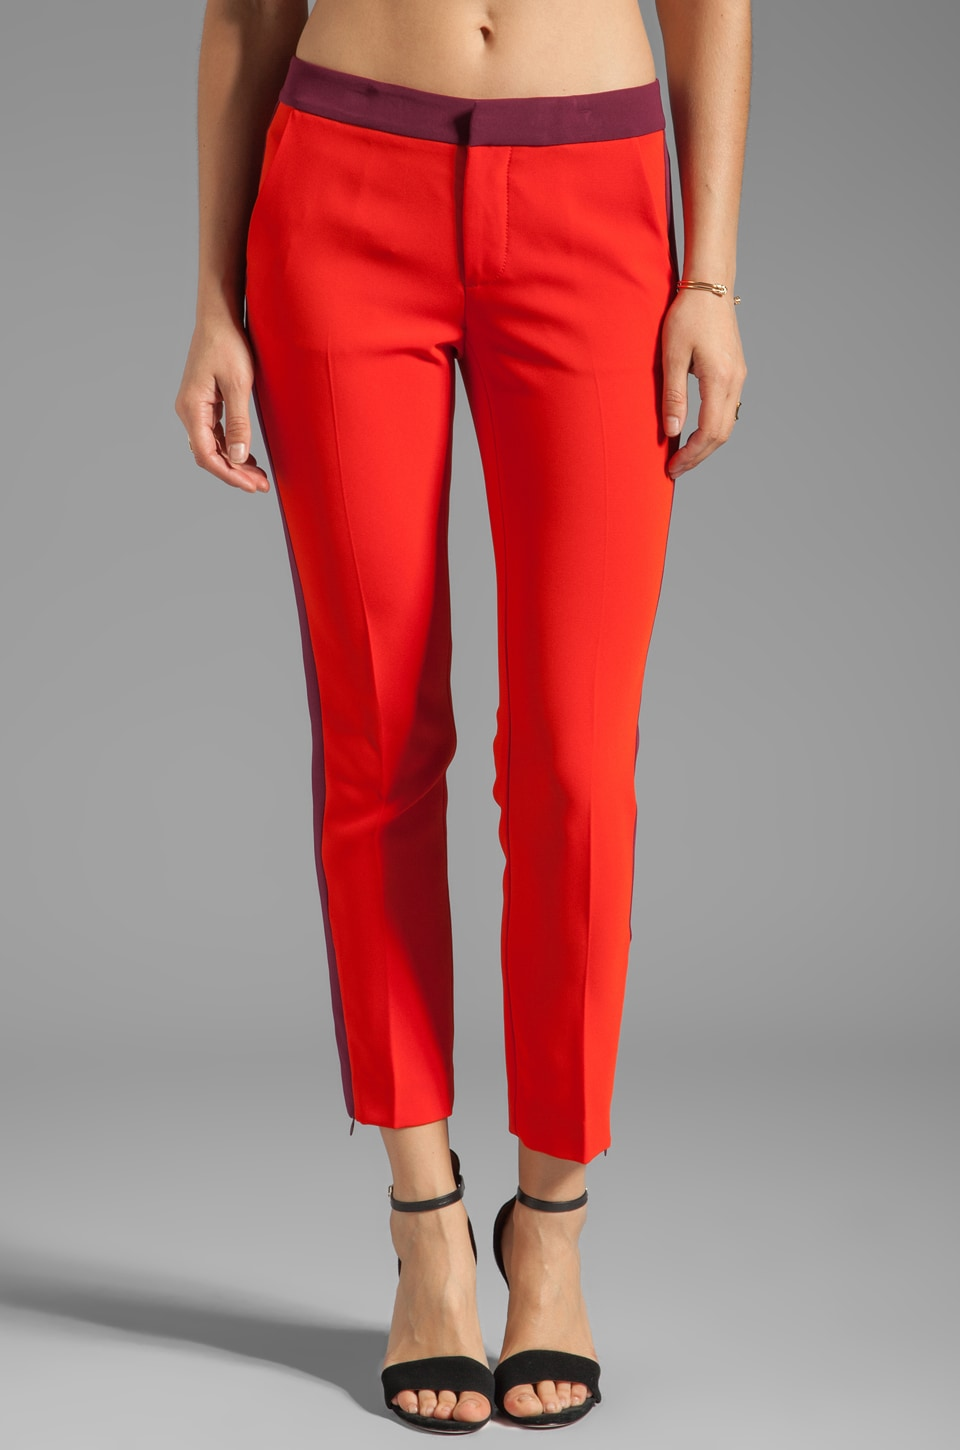 Marc by Marc Jacobs Sparks Crepe Pant in Corvette Red Multi